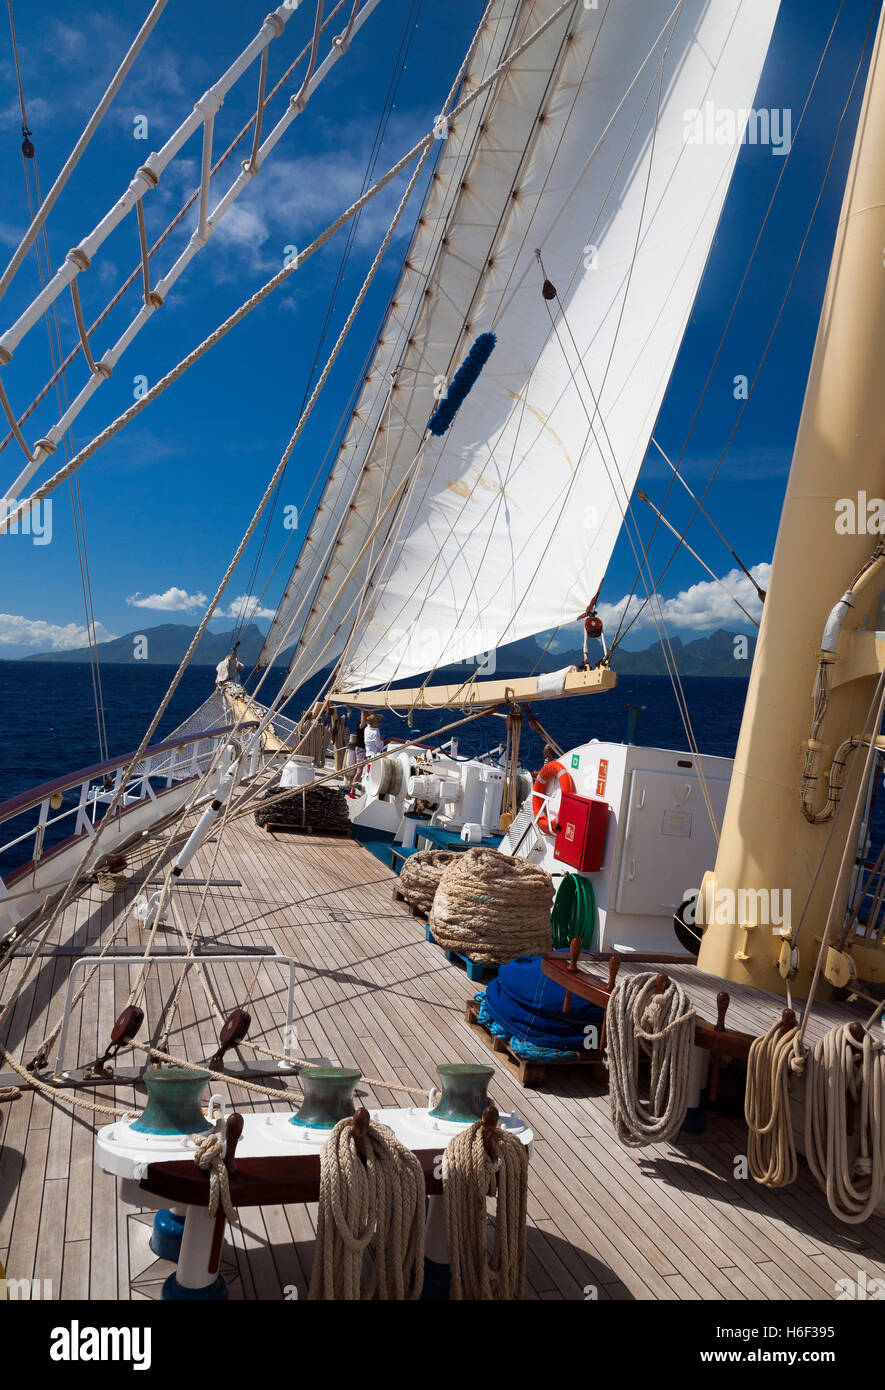 Sailing-ship in South Pacific - Stock Image